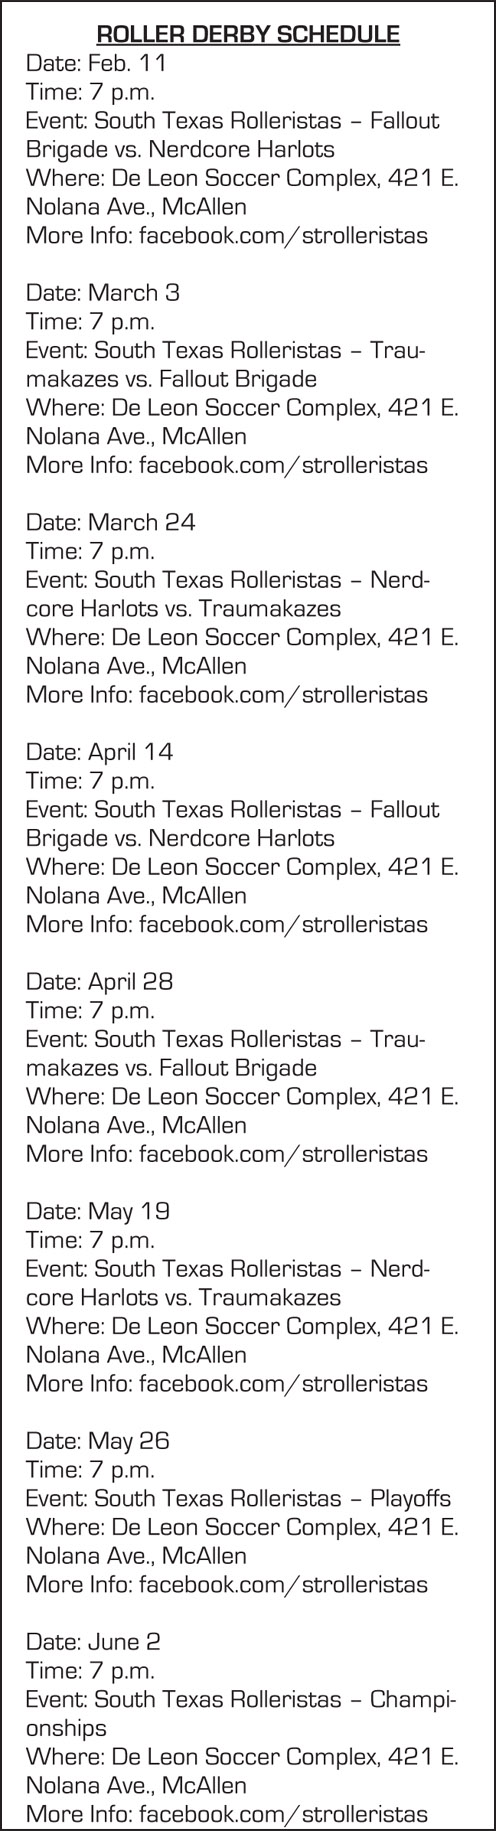 South Texas Rolleristas Schedule